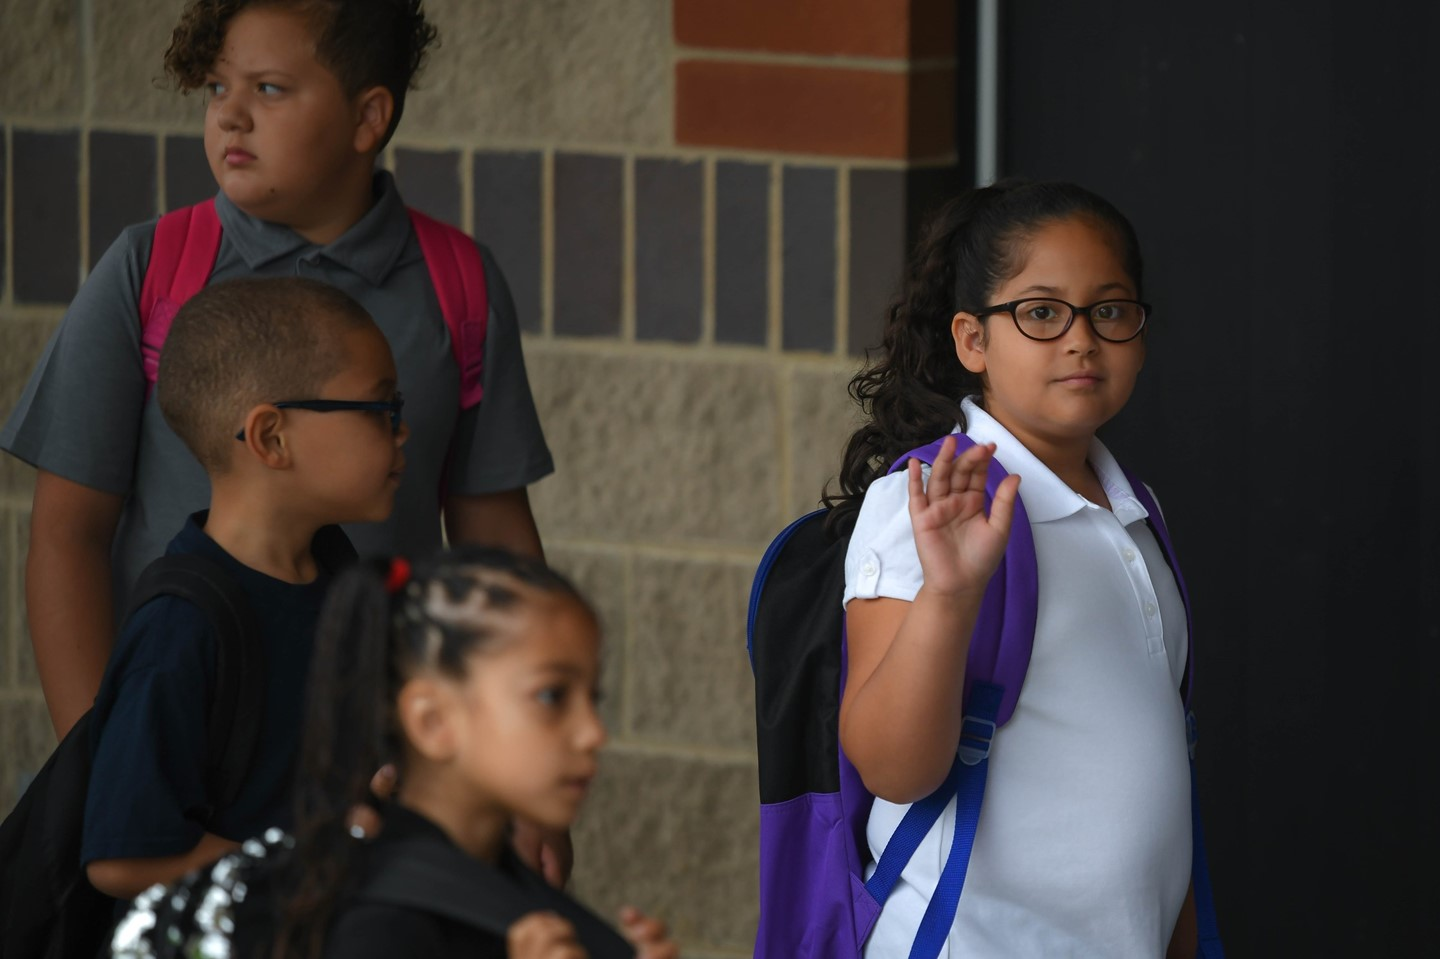 A young scholar waves as she makes her way into the building